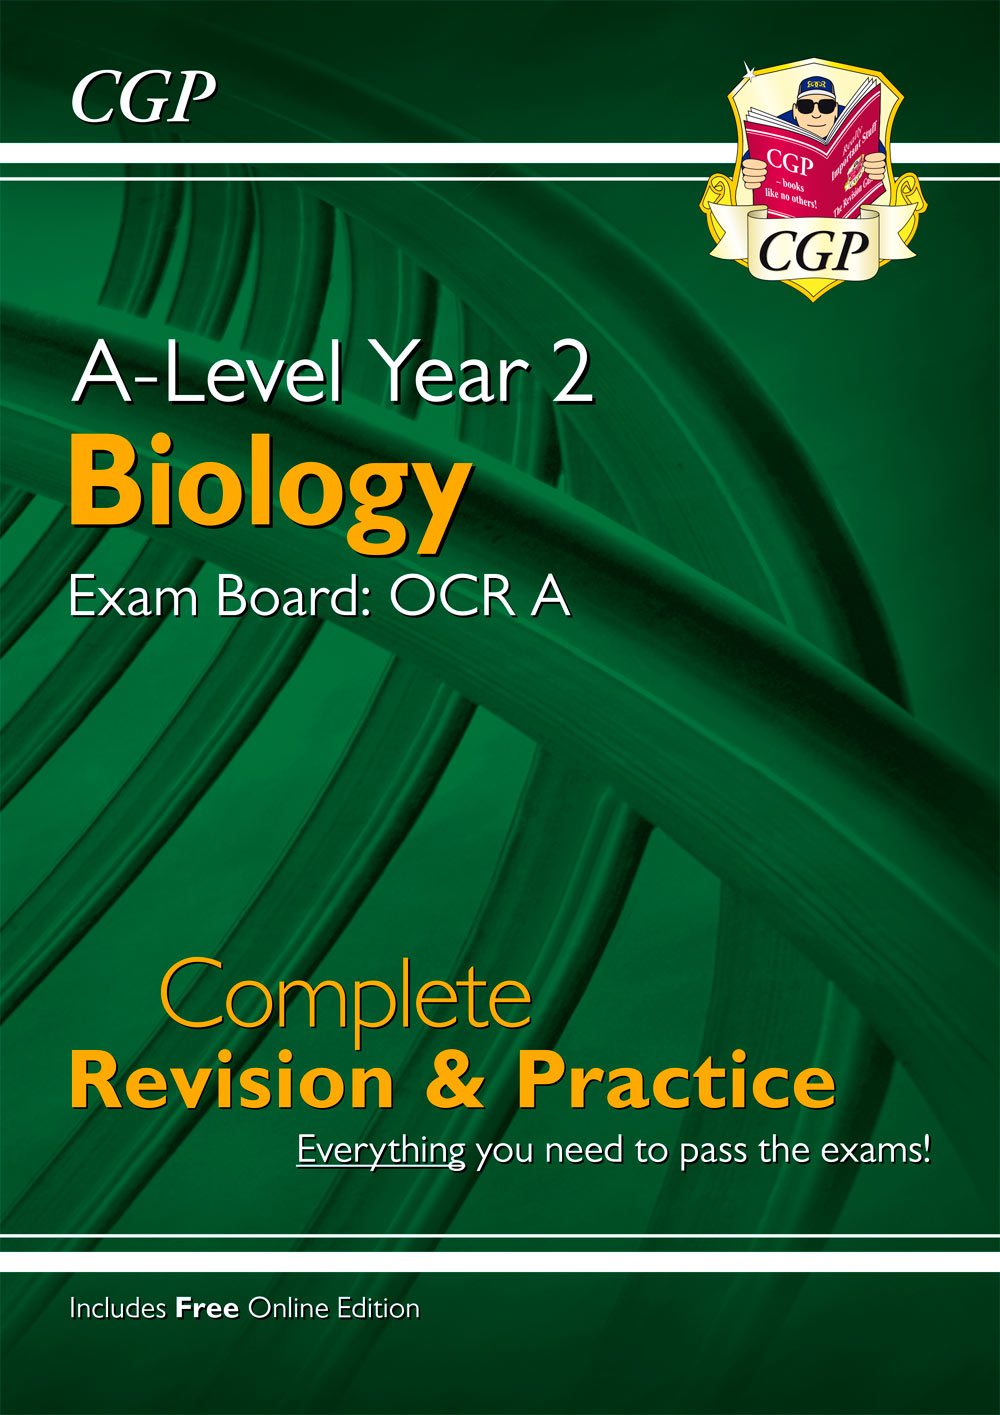 BRAR63 - A-Level Biology: OCR A Year 2 Complete Revision & Practice with Online Edition